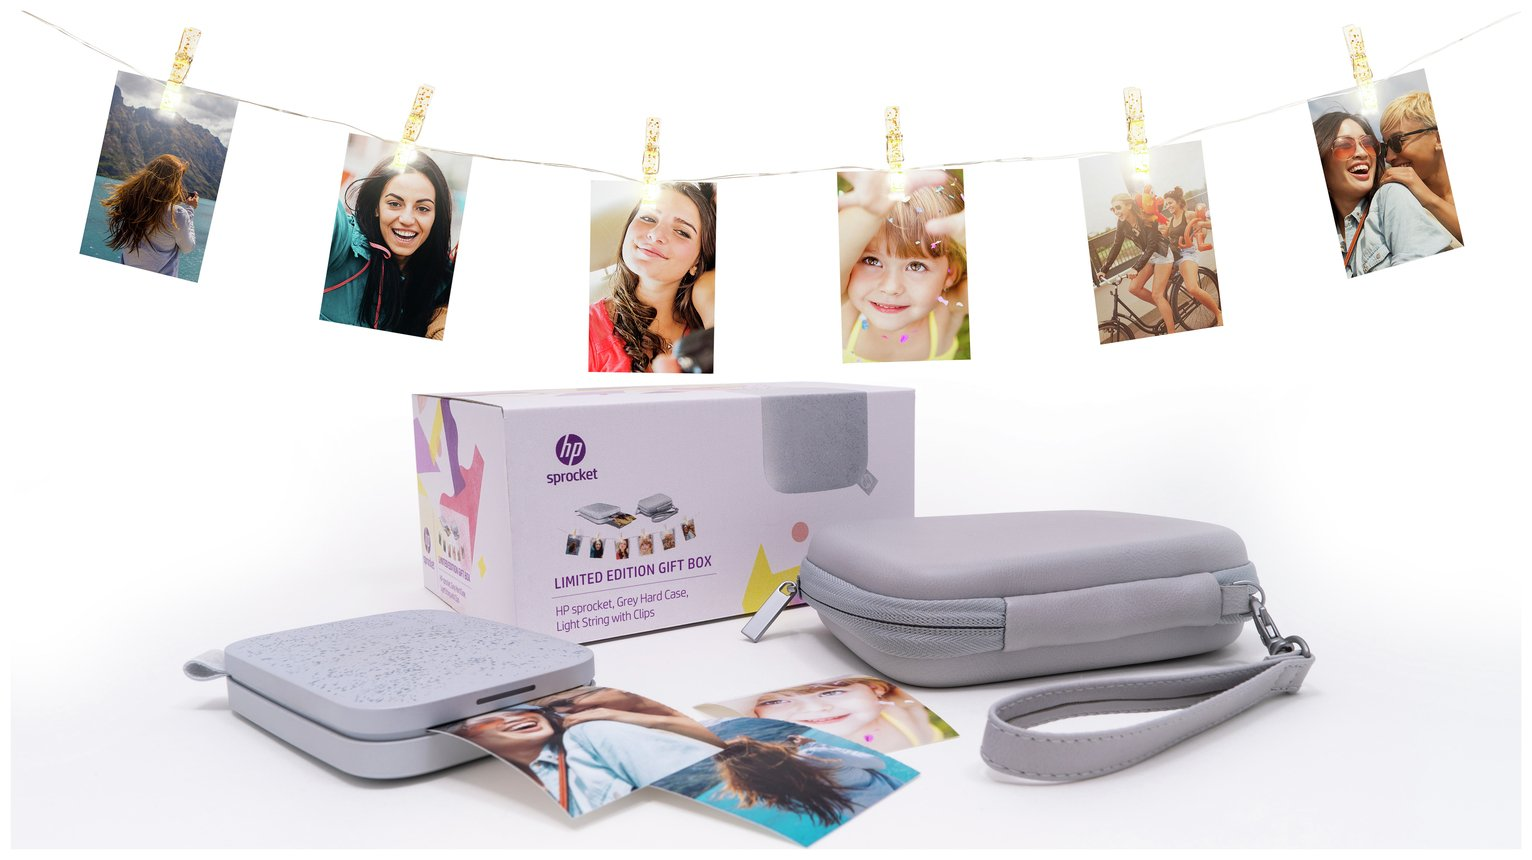 Hp Sprocket Photo Printer In Limited Edition Gift Box by Argos